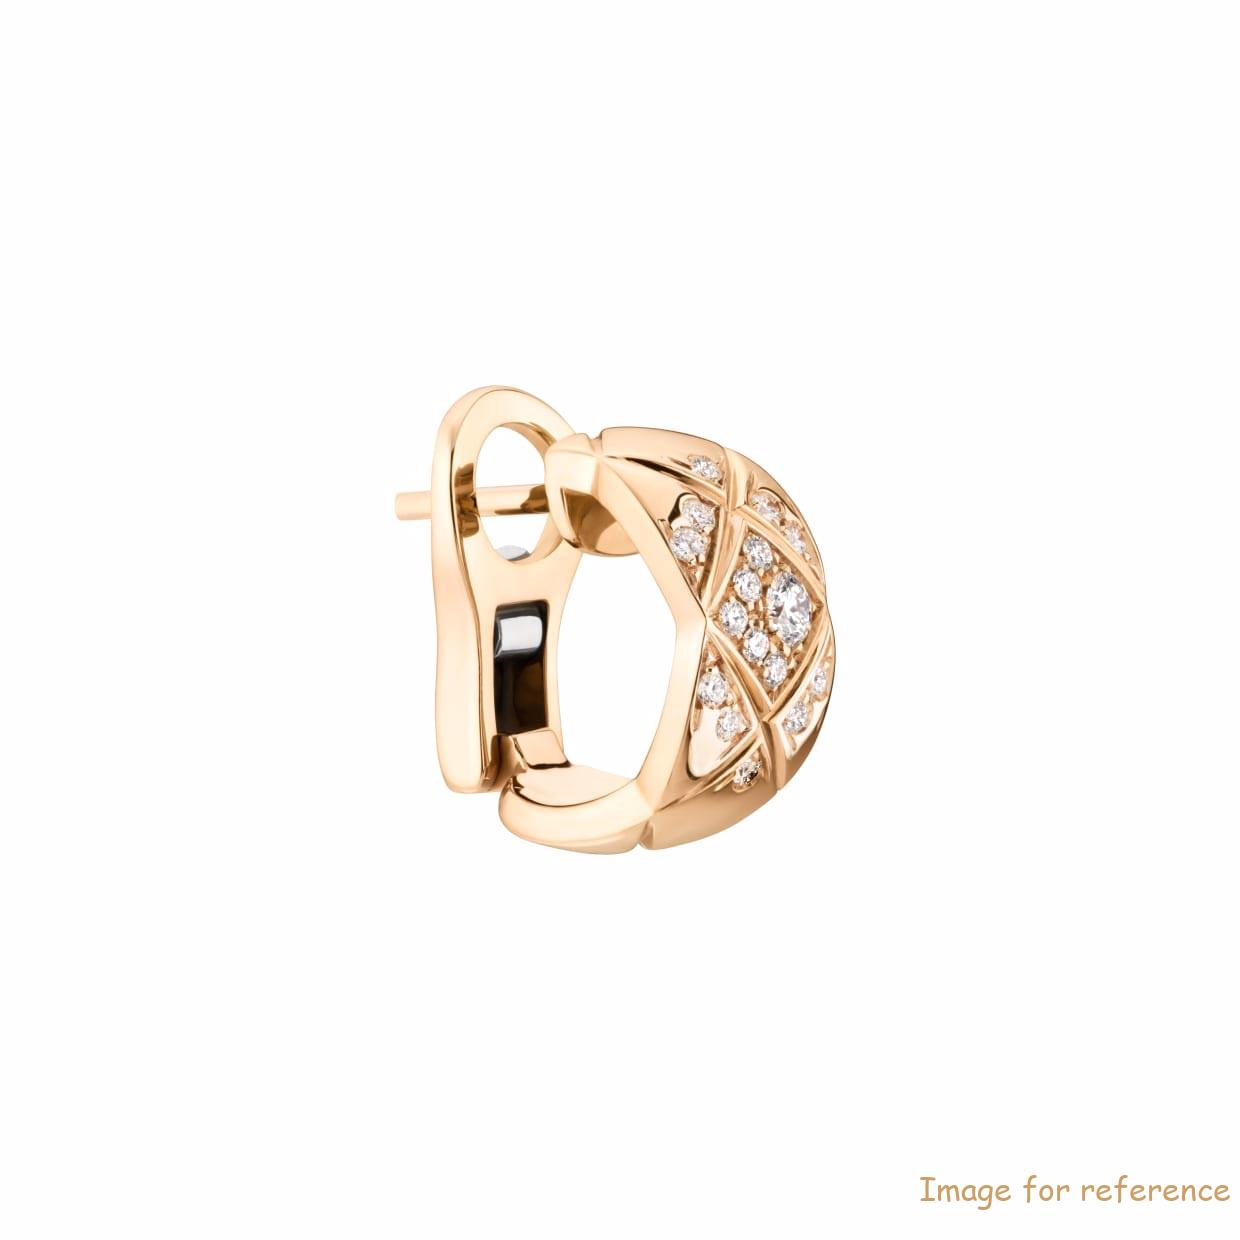 18K-GOLD-and-diamonds-Clip-on-earrings